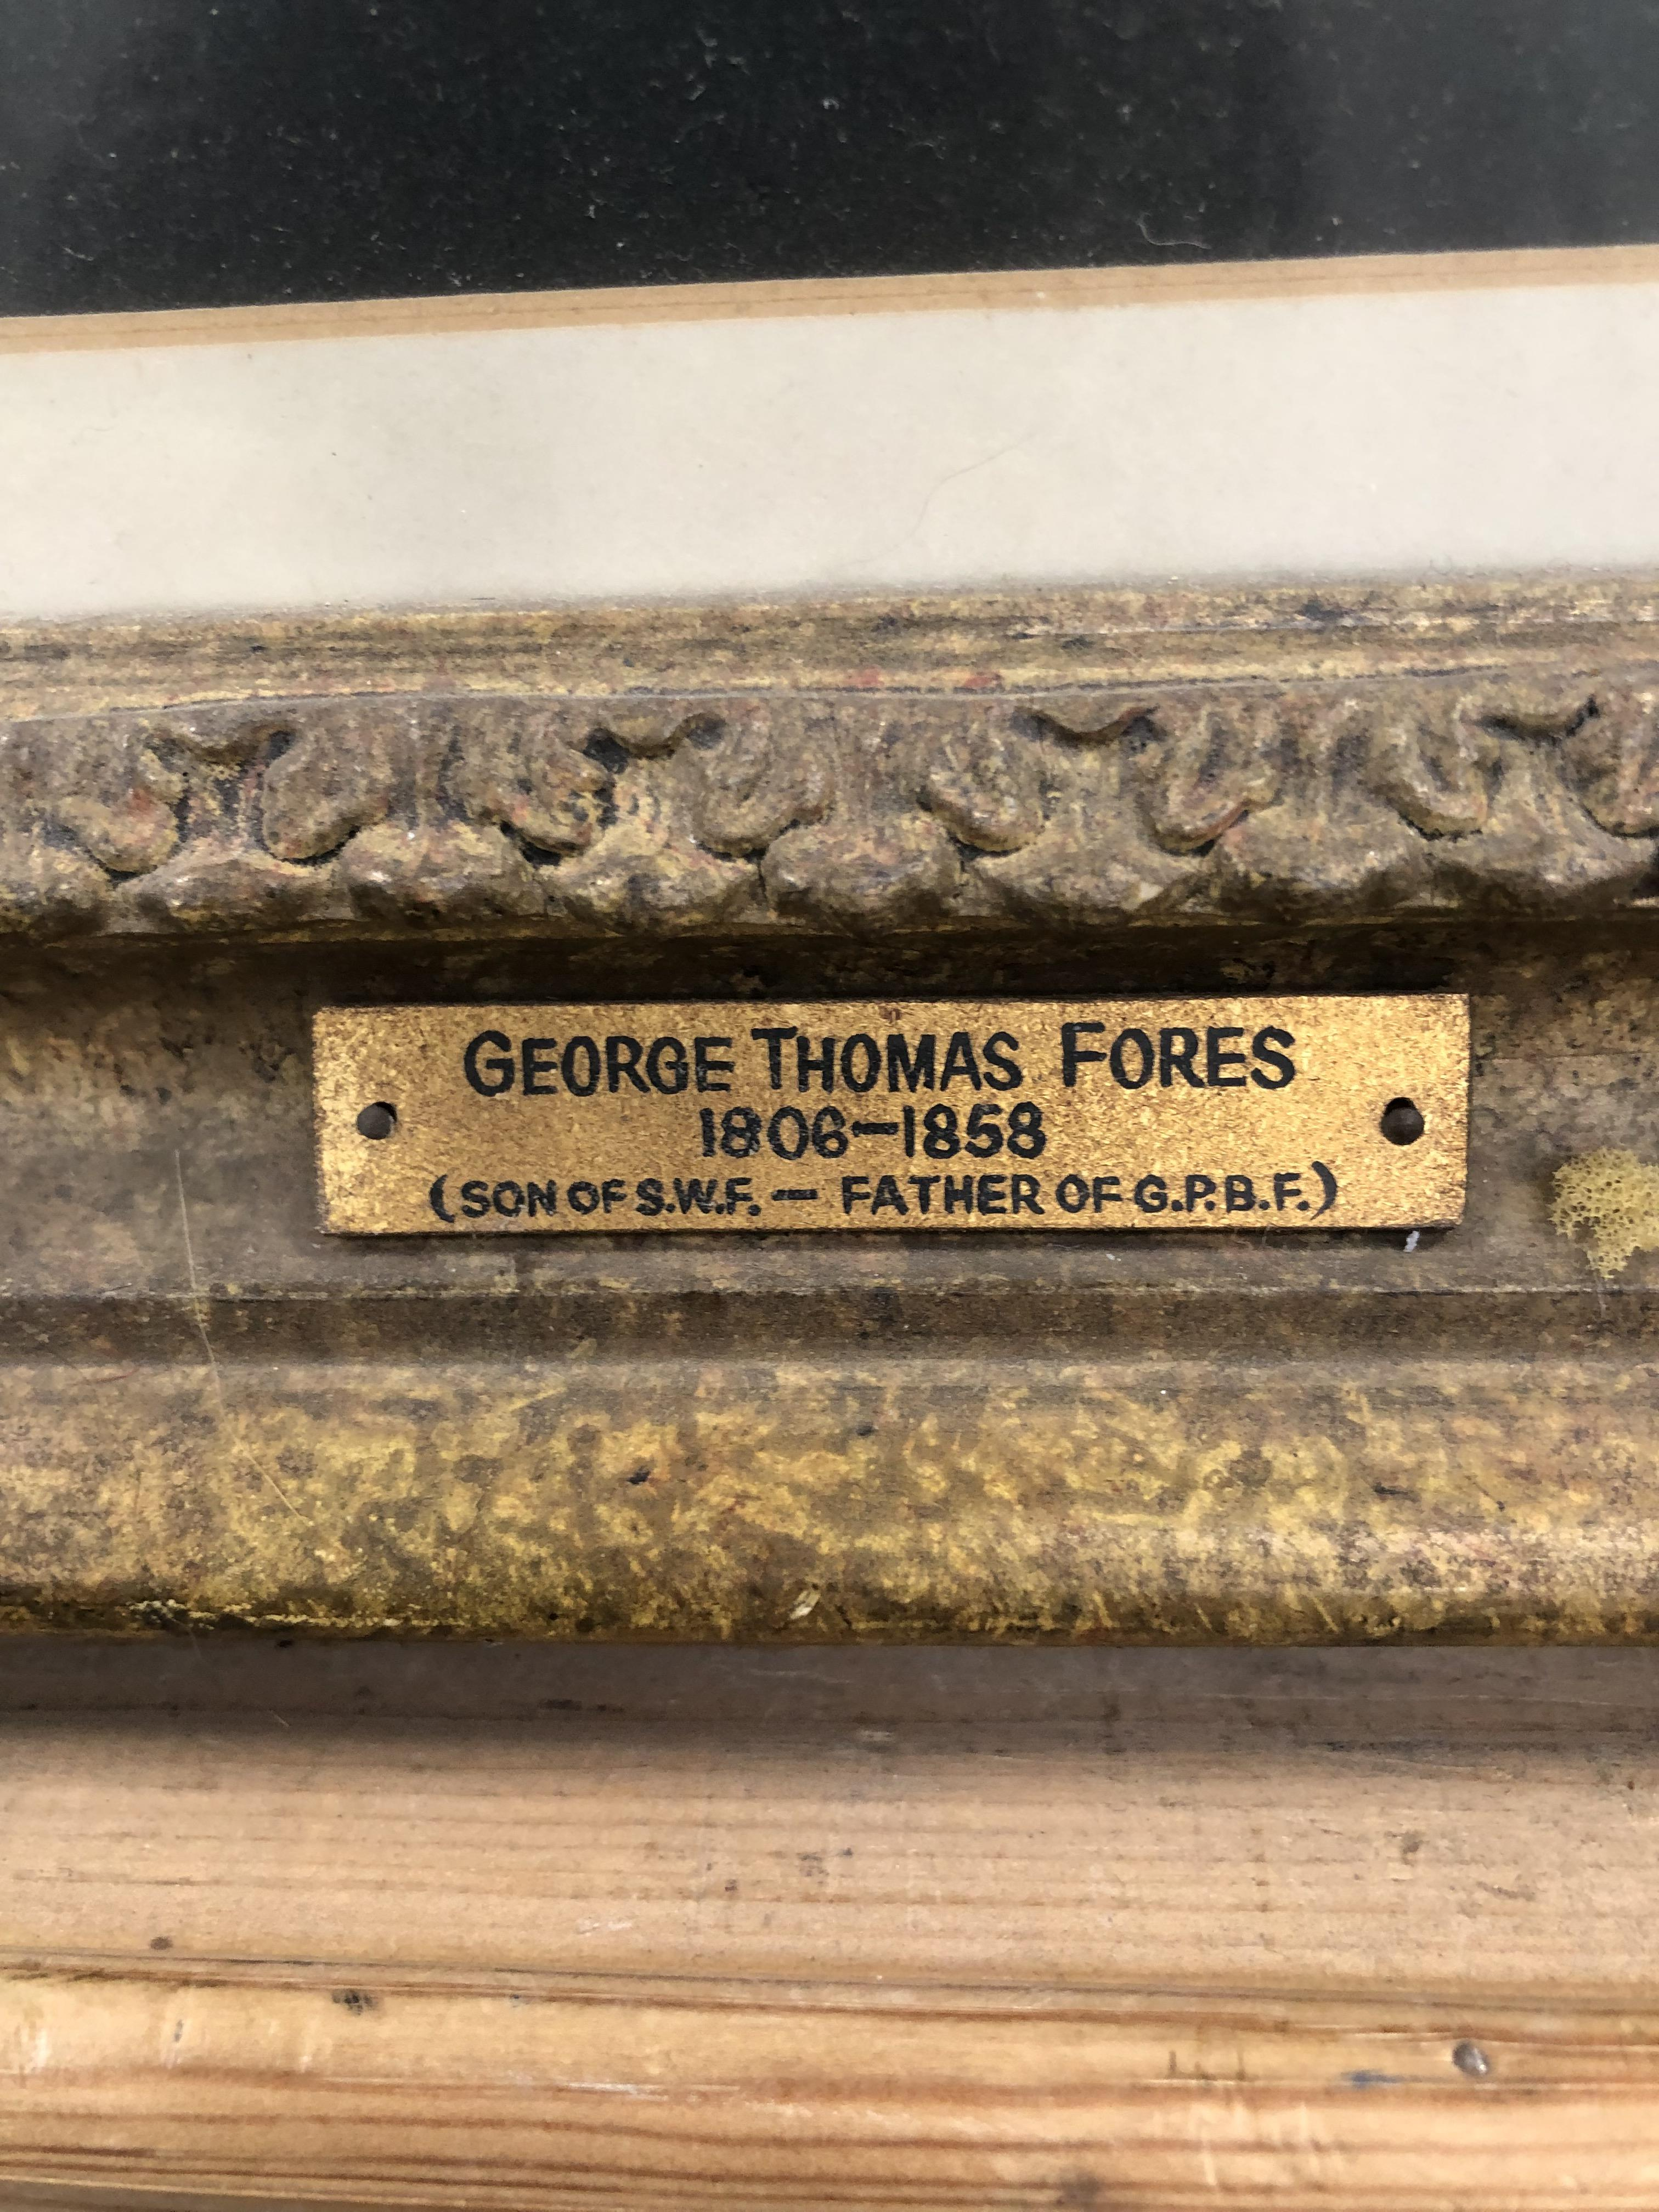 APPLETON? (19th CENTURY ENGLISH SCHOOL) PORTRAIT OF GEORGE THOMAS FORES 1808-1858. SIGNED AND - Image 5 of 5